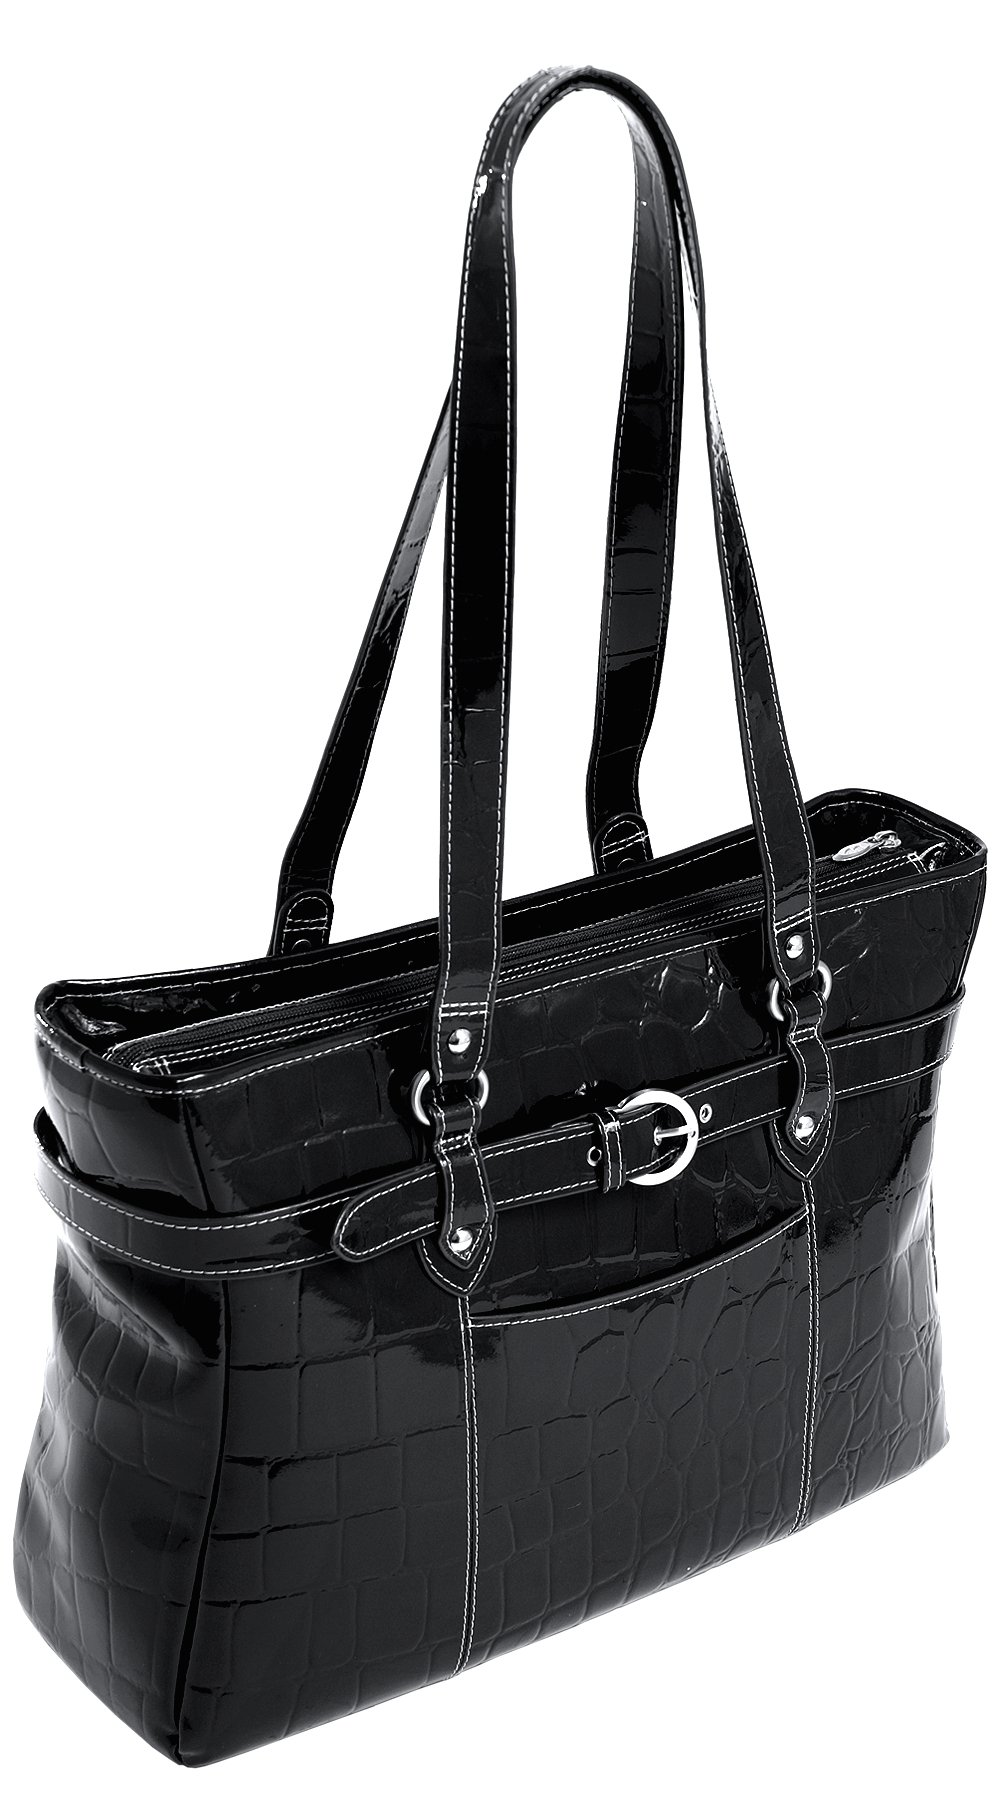 Siamod SERRA 35265 Black Leather Ladies' Laptop Tote